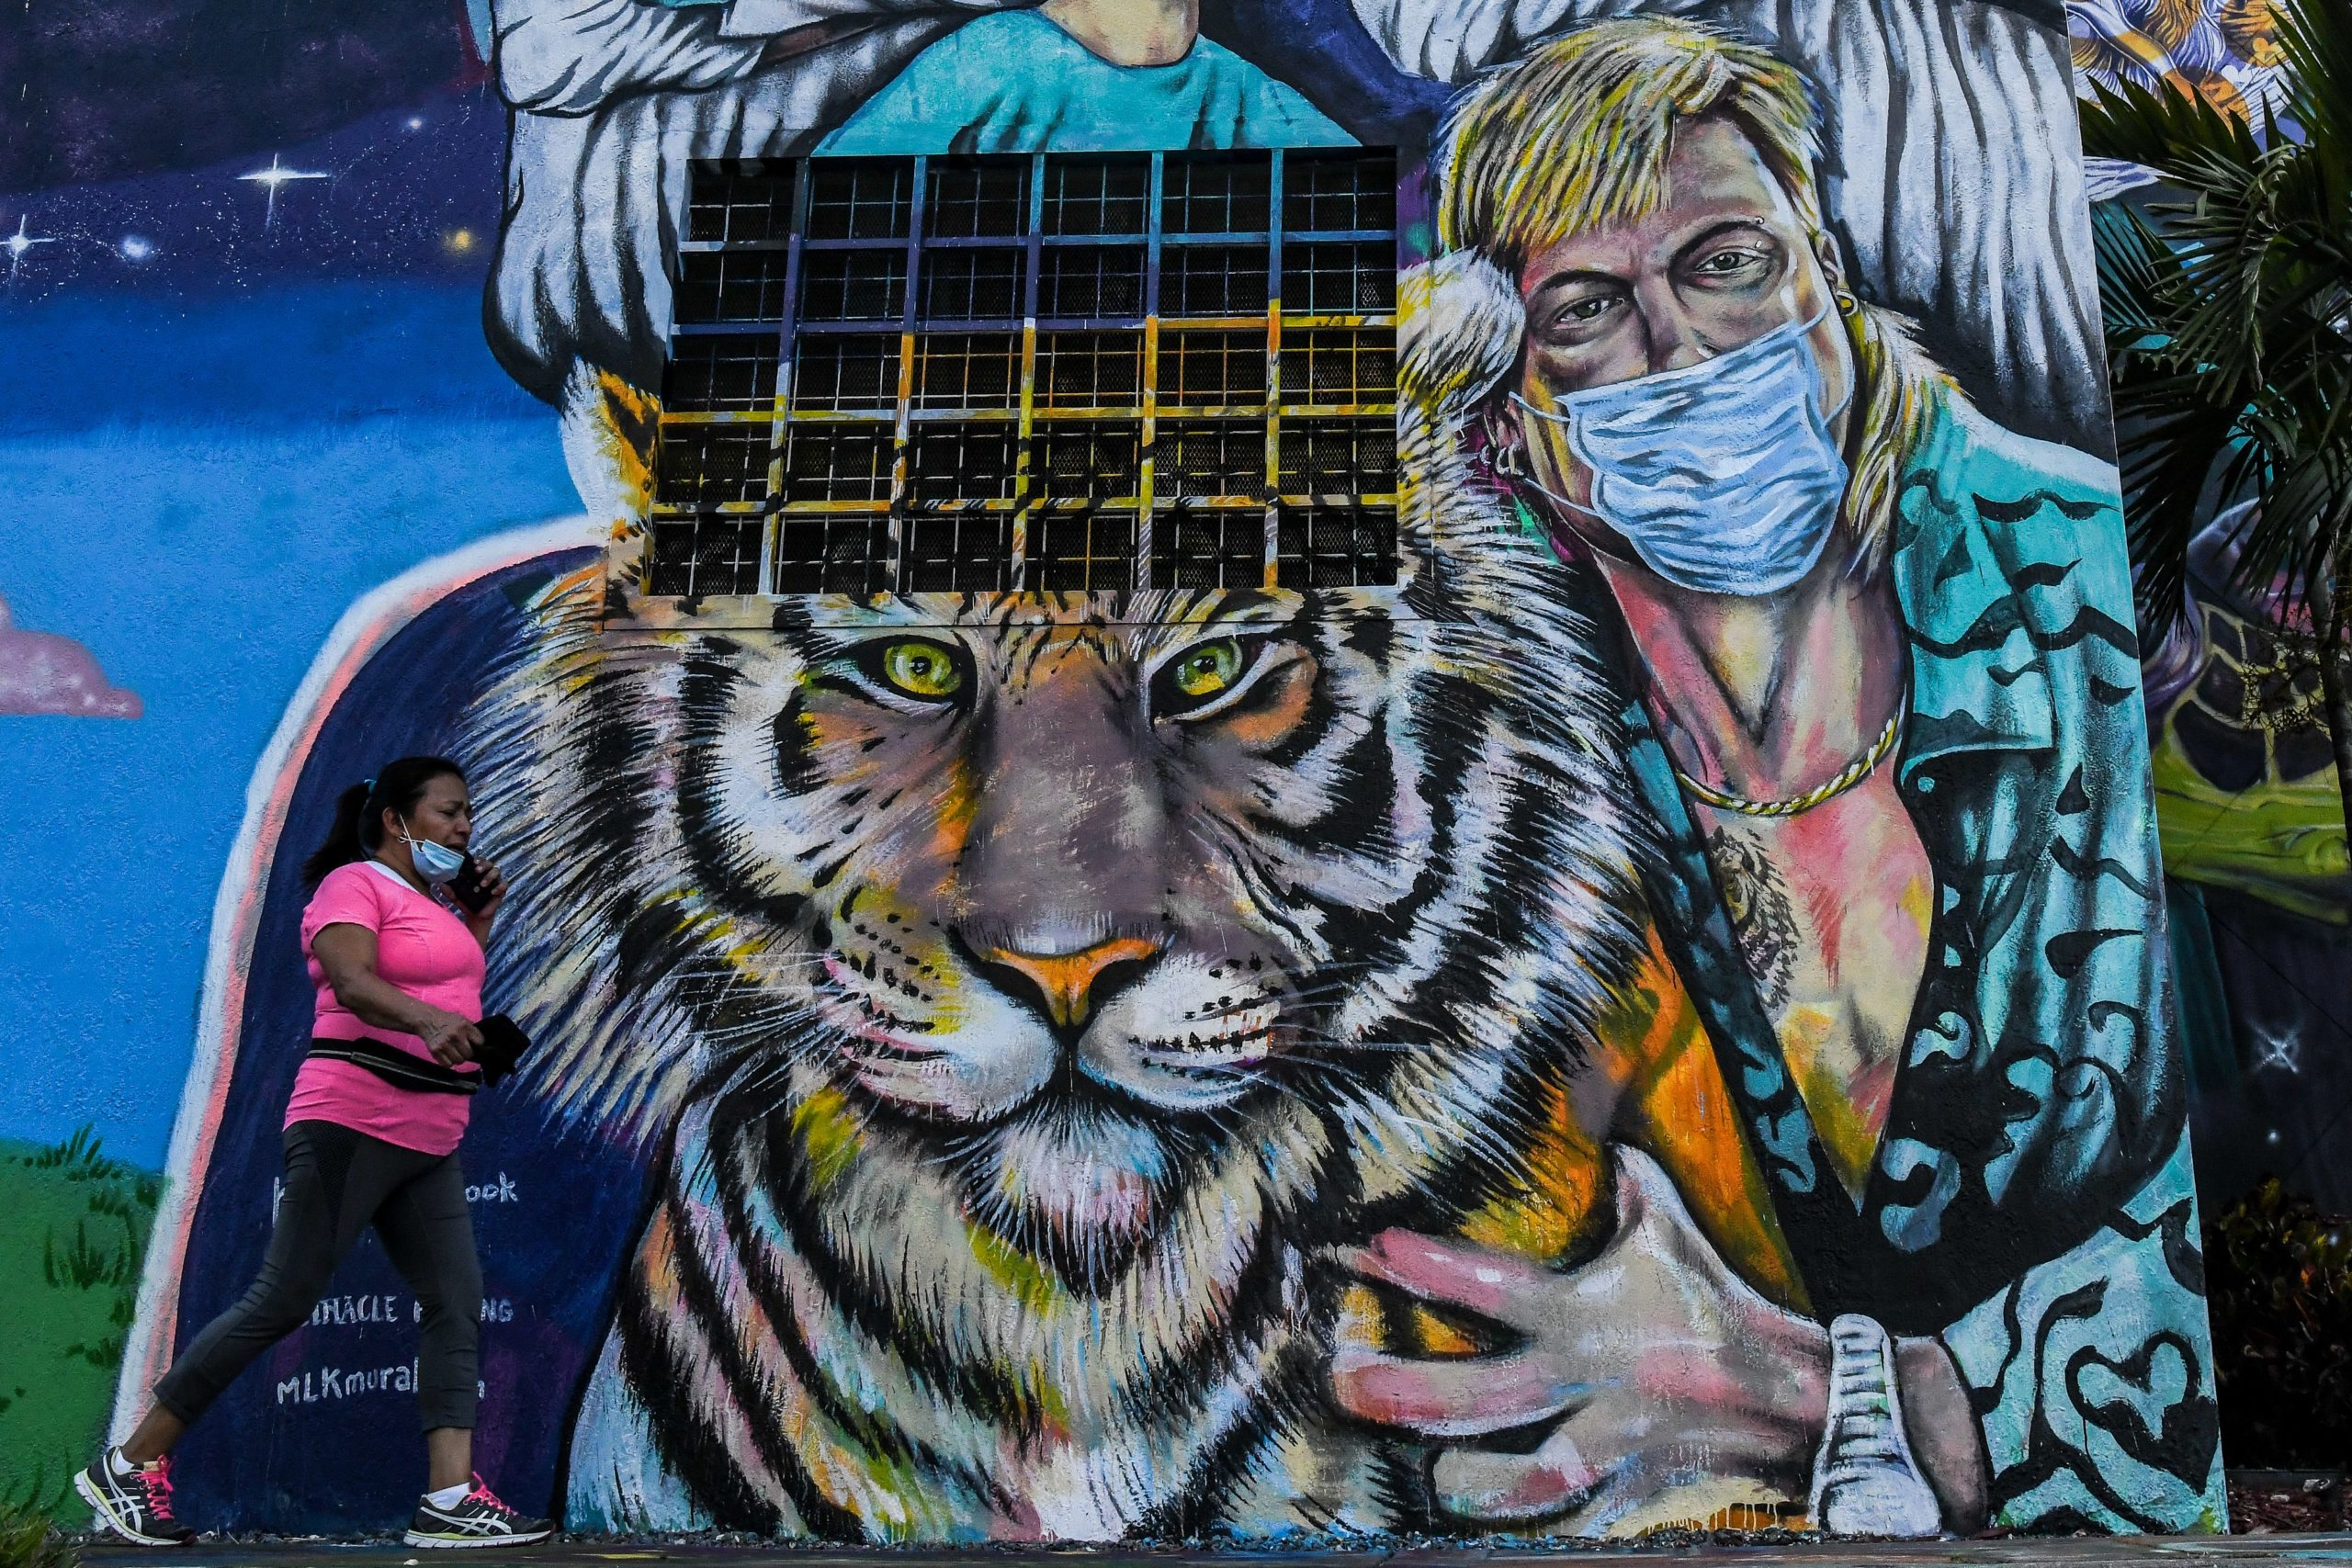 "A woman walks past a mural by US muralist Kyle Holbrook with health workers and Joseph ""Joe Exotic"" Maldonado-Passage (R, below) wearing a mask in Wynwood Art District in Miami, Florida on June 29, 2020. - The City of Miami issued an emergency order mandating facial coverings be worn in public at all times and until further notice. Officials will start issuing fines of up to $500 for not wearing a mask in public. (Photo by CHANDAN KHANNA / AFP) / RESTRICTED TO EDITORIAL USE - MANDATORY MENTION OF THE ARTIST UPON PUBLICATION - TO ILLUSTRATE THE EVENT AS SPECIFIED IN THE CAPTION (Photo by CHANDAN KHANNA/AFP via Getty Images)"